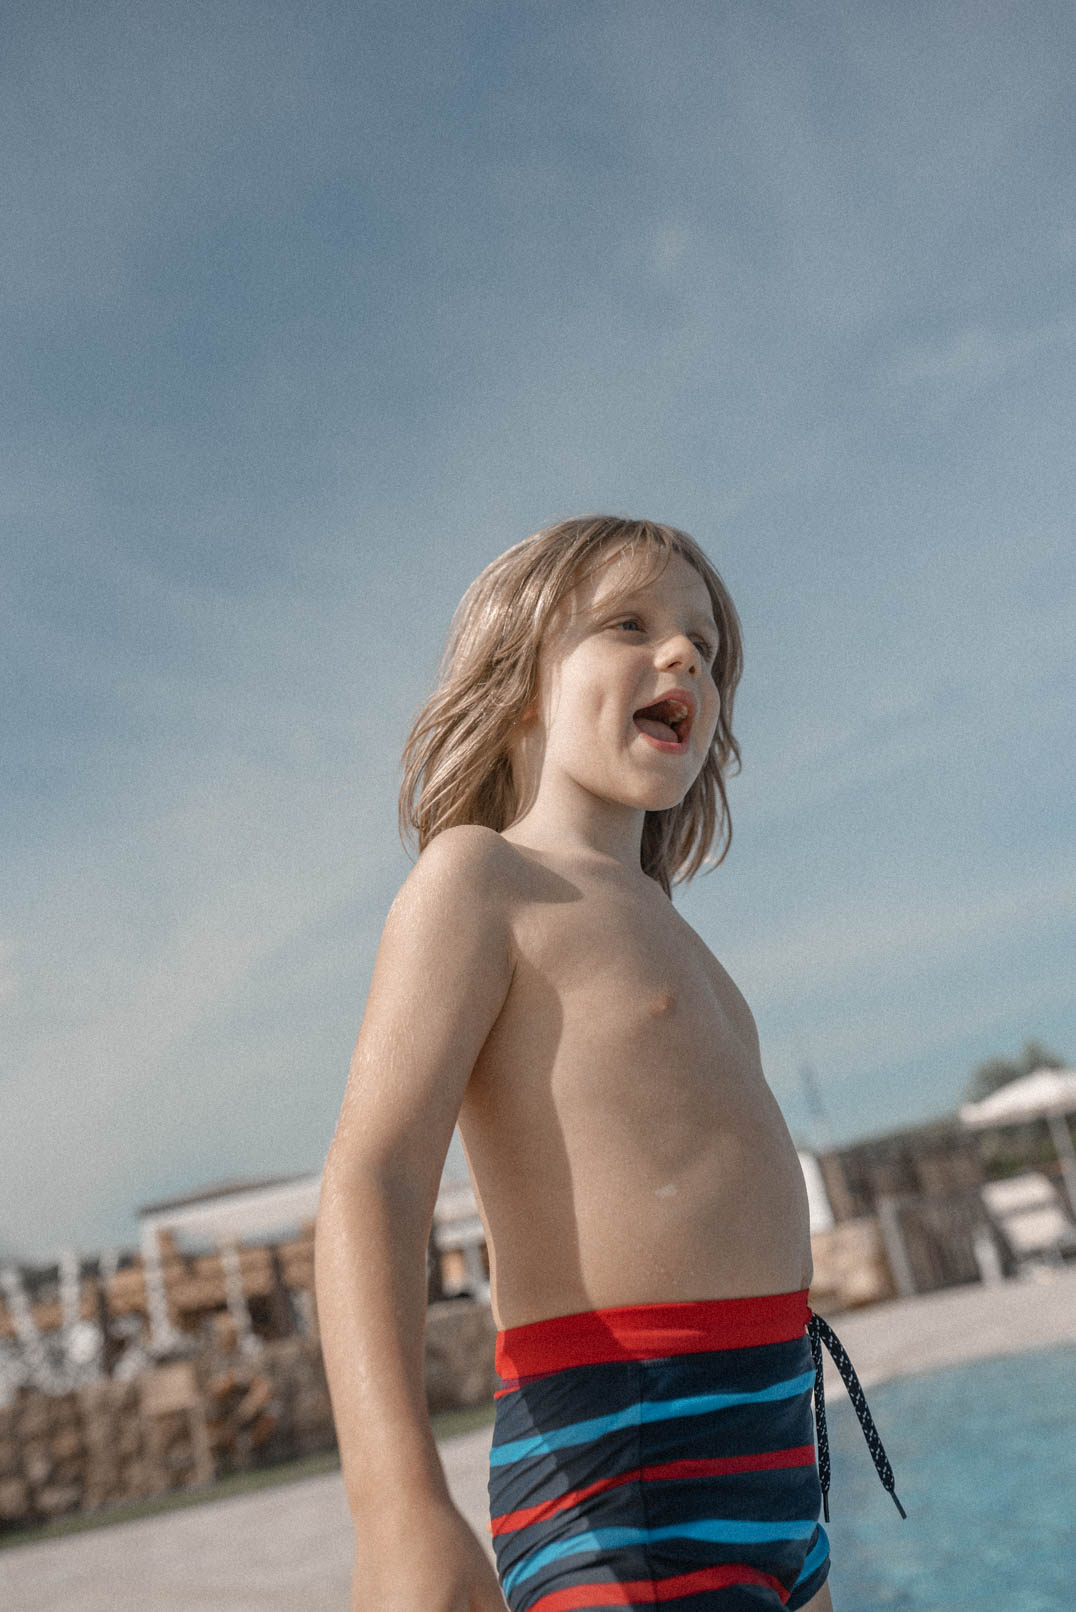 Travels with Autism - An Unofficial guide - Charlie by the pool in Sardinia